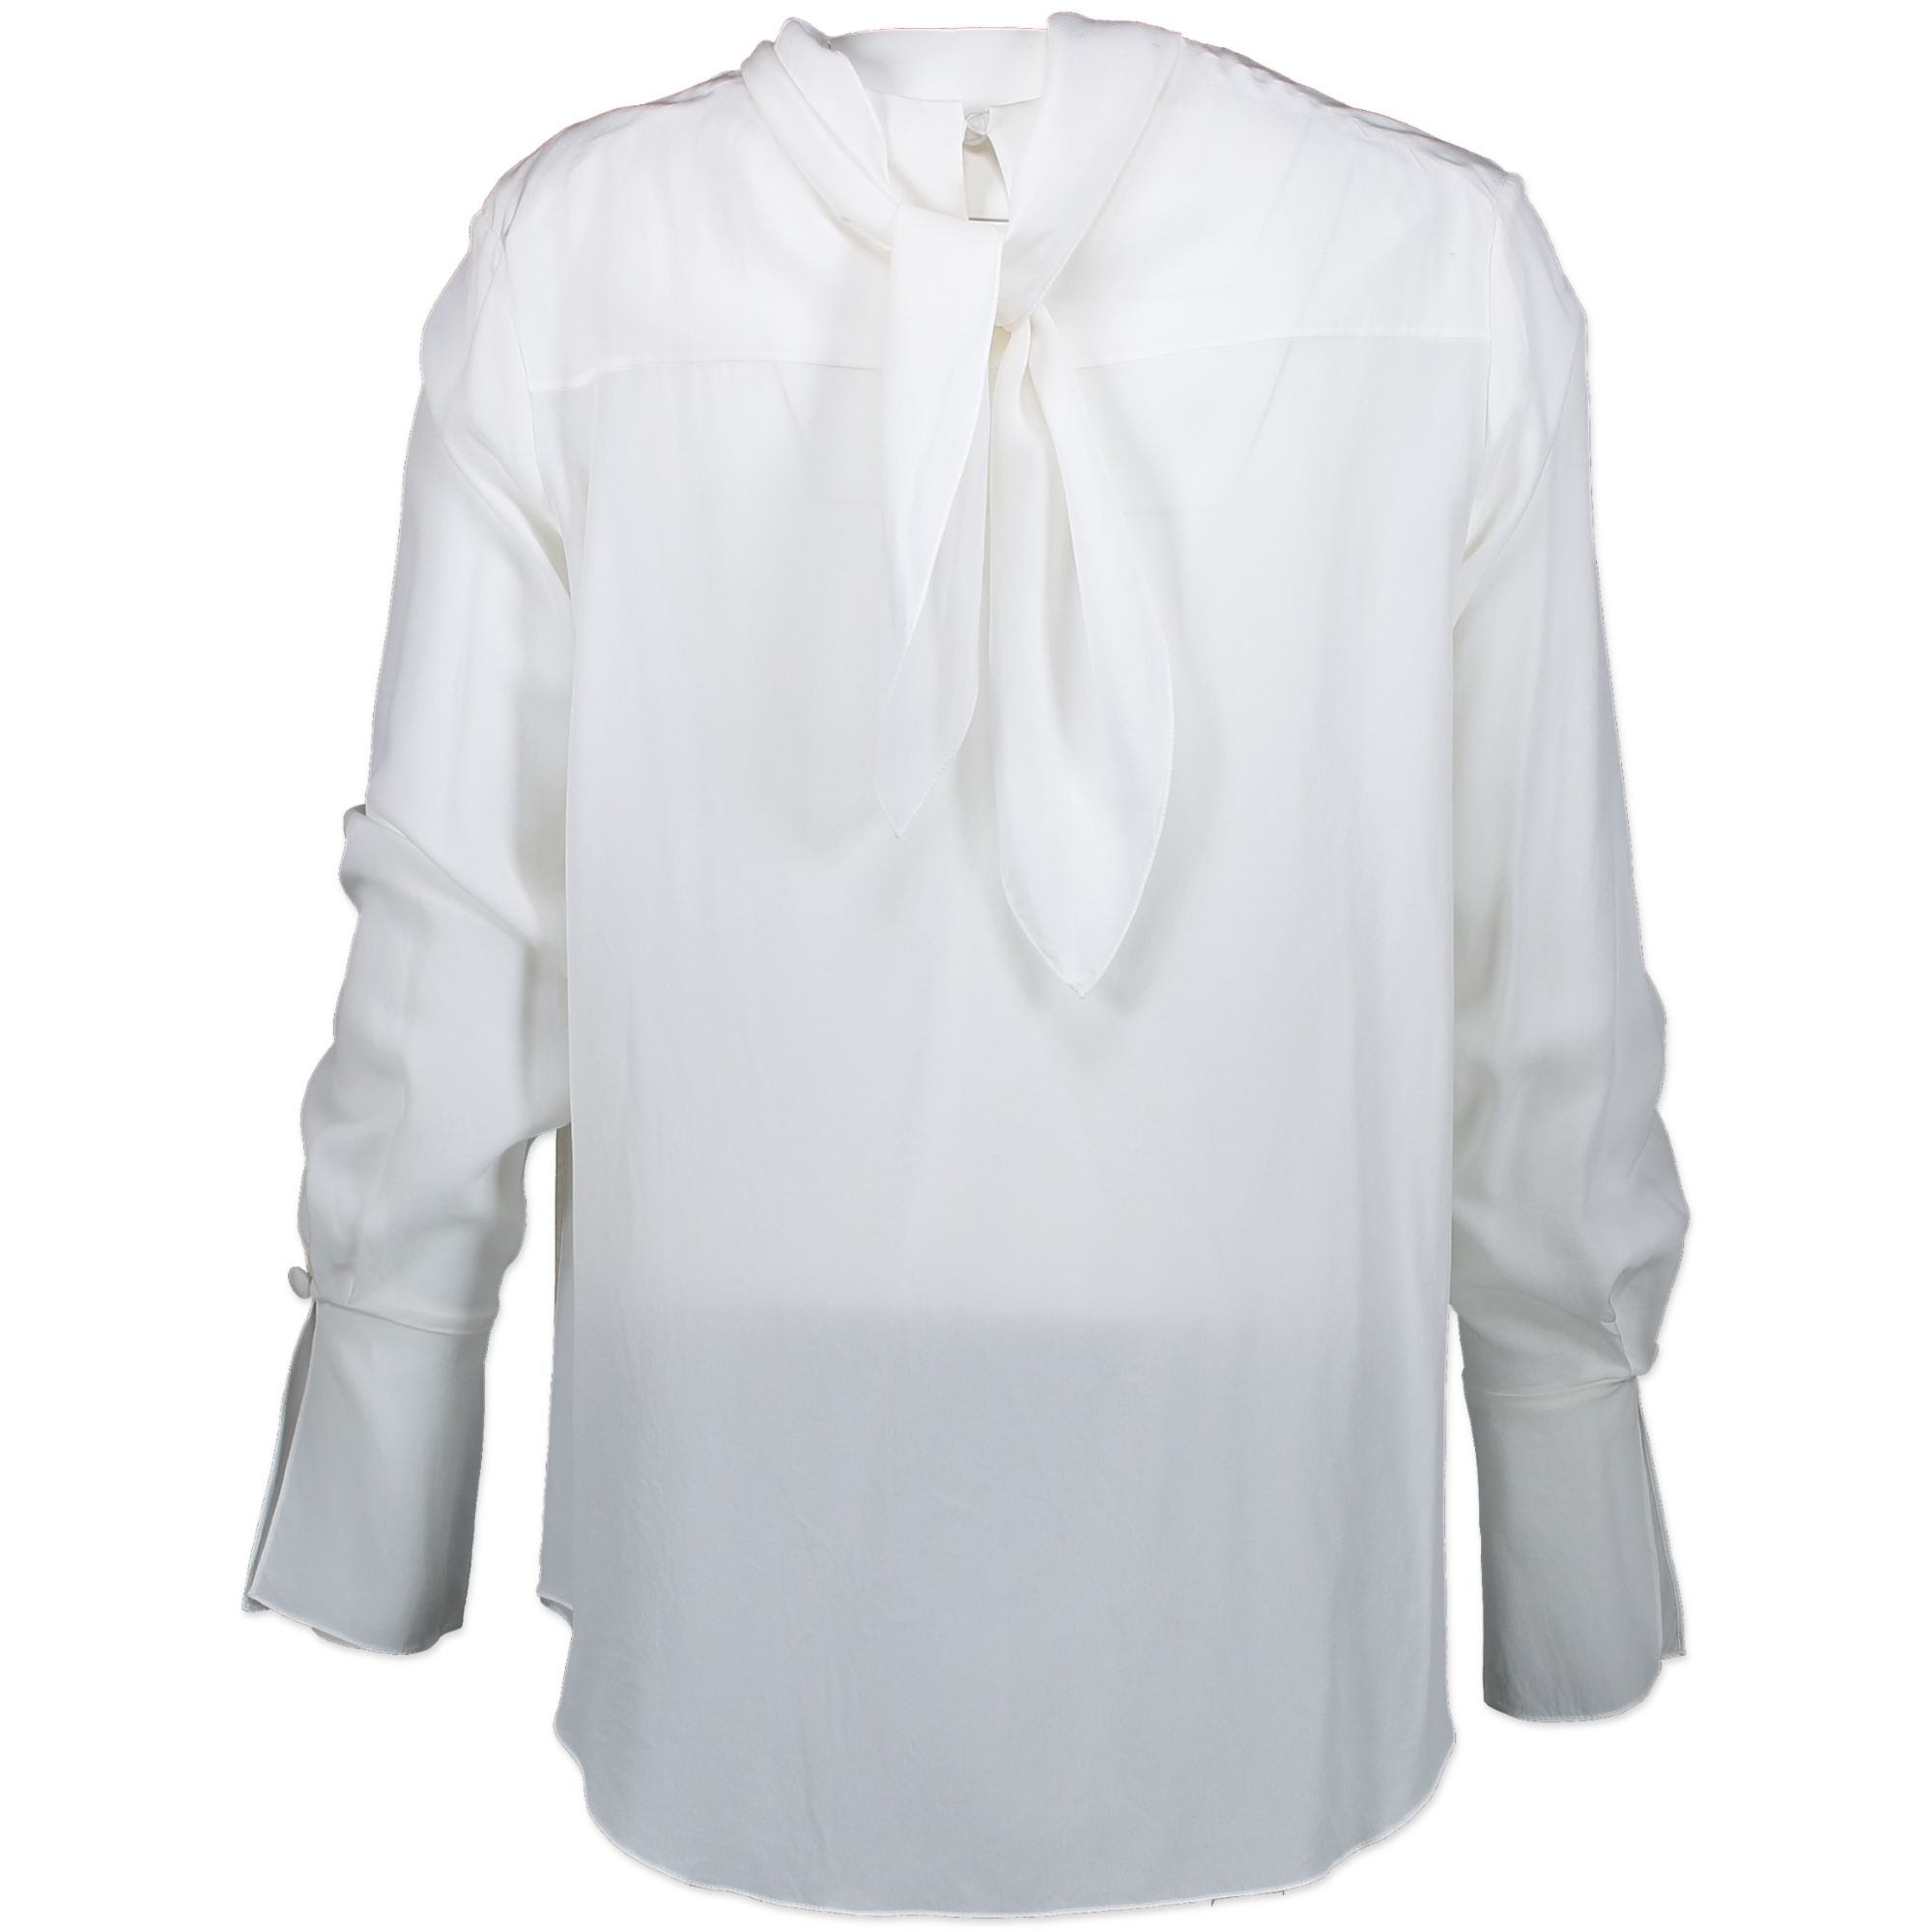 Chloé White Silk Top - 36  Buy authentic Secondhand silk top at the right prices at Labellov vintage webshop. Safe and secure designer online shopping. Koop authentieke tweedehands silk top voor de juiste prijs bij Labellov online webshop. Veilig online s